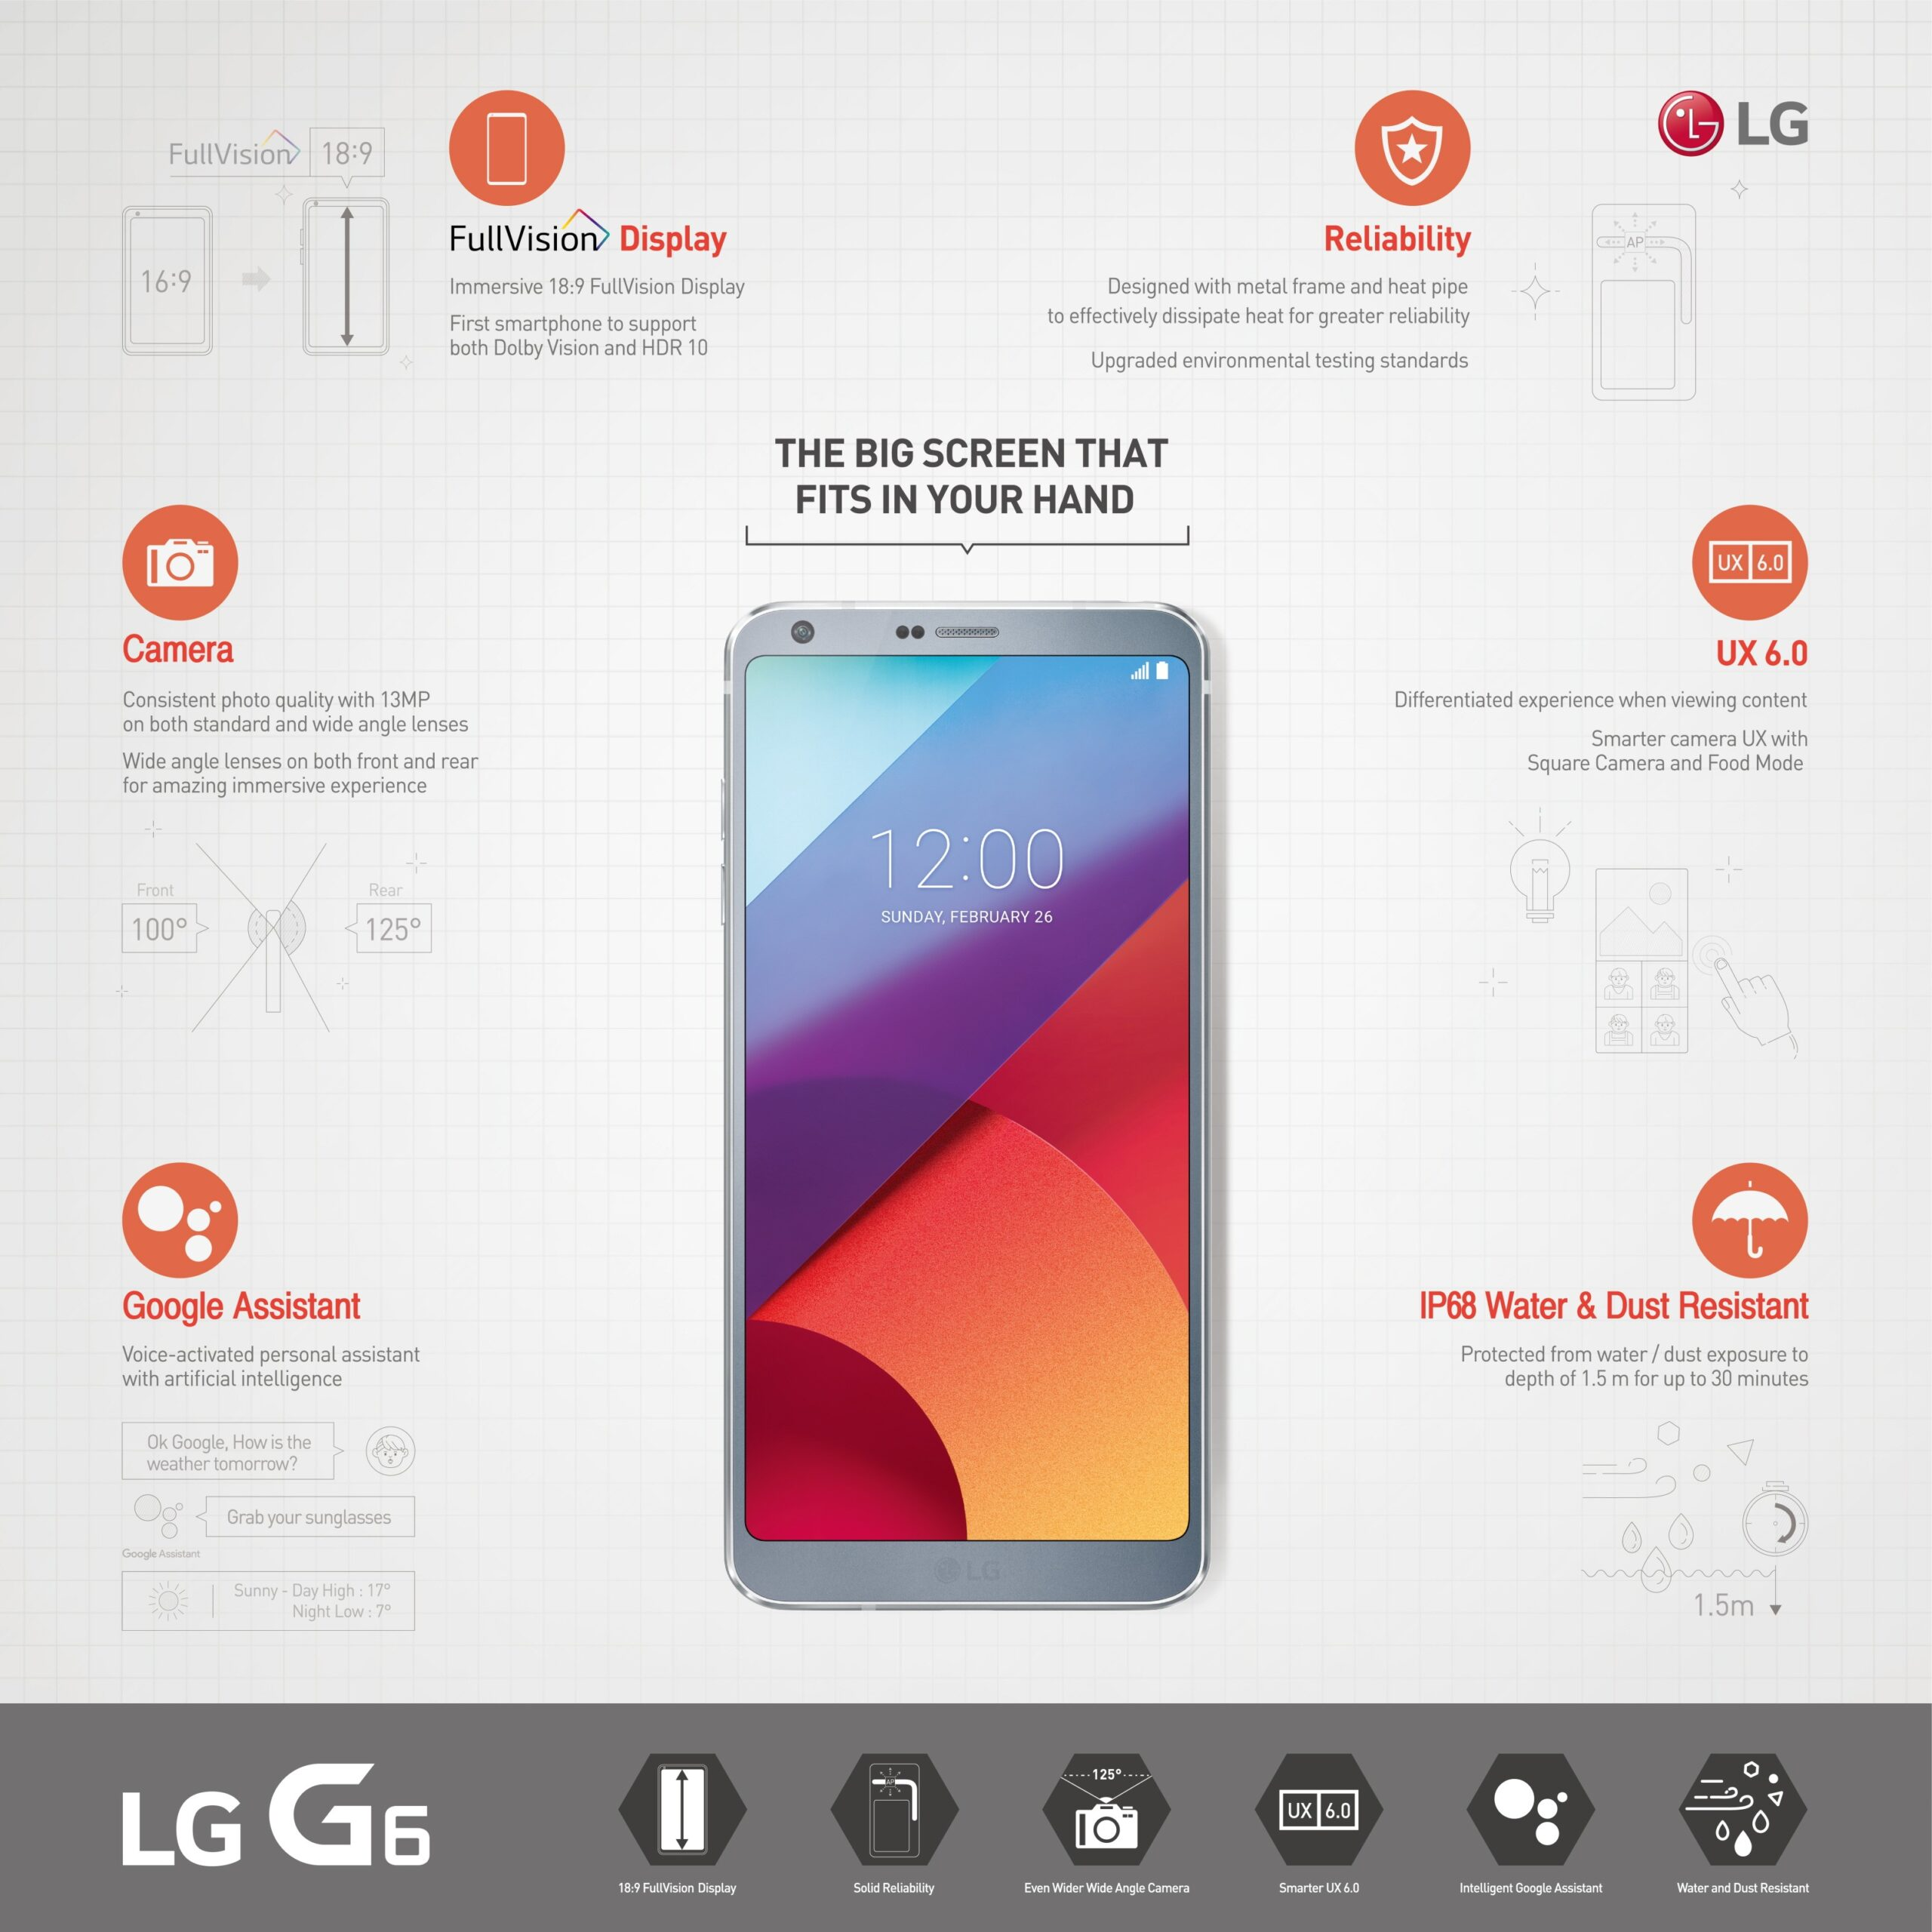 This infographic introduces the unique benefits of LG G6, including its FullVision display, enhanced reliability, Google Assistant AI voice recognition, high-end cameras, UX 6.0 and water and dust resistance.